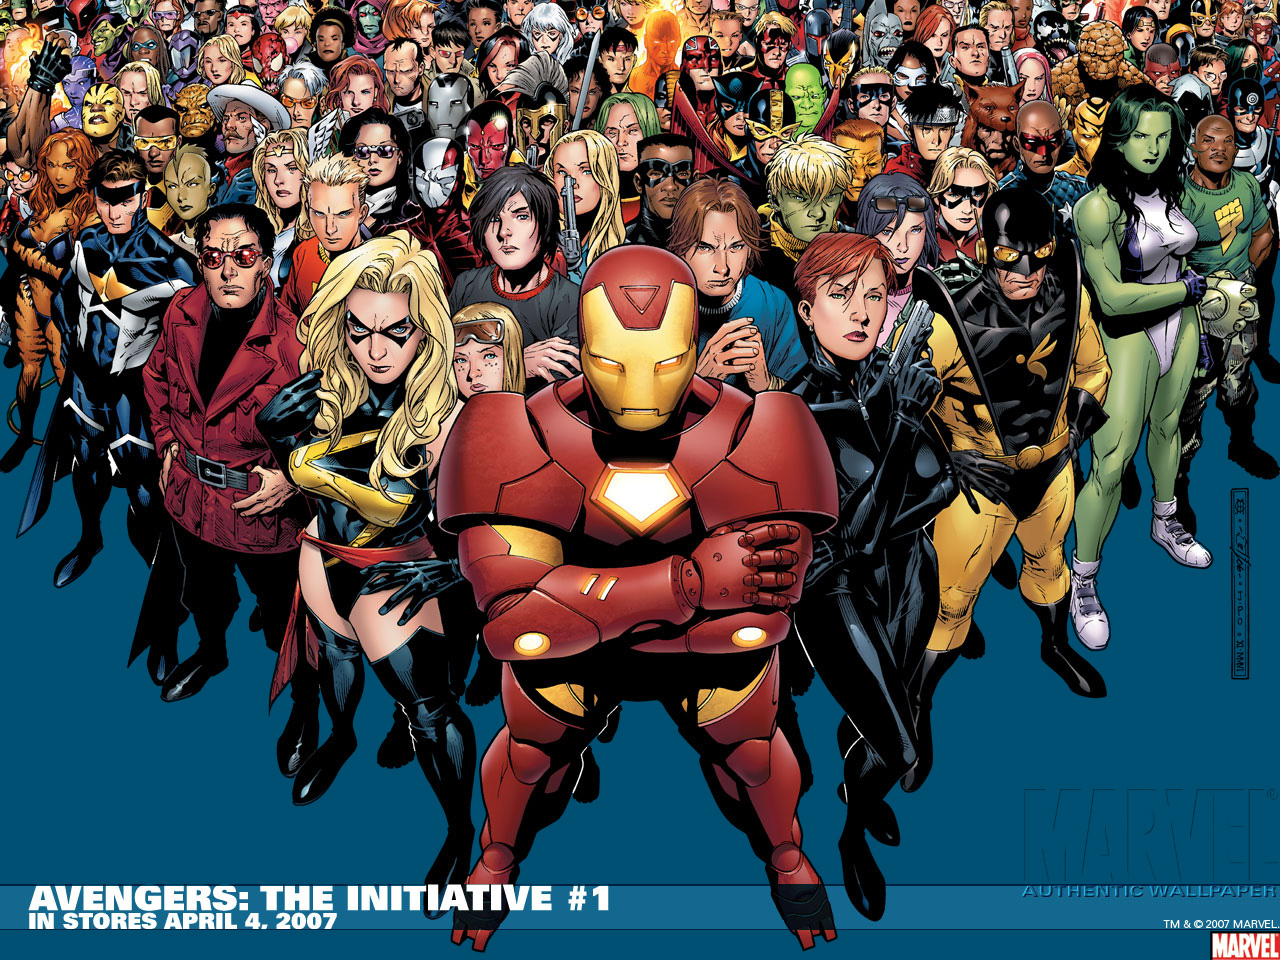 http://1.bp.blogspot.com/_ftXyf8kWnYM/TRkpcXtDsjI/AAAAAAAAAco/B-DX2uAjgMA/s1600/avengers-the-initiative-wallpaper-865922.jpeg